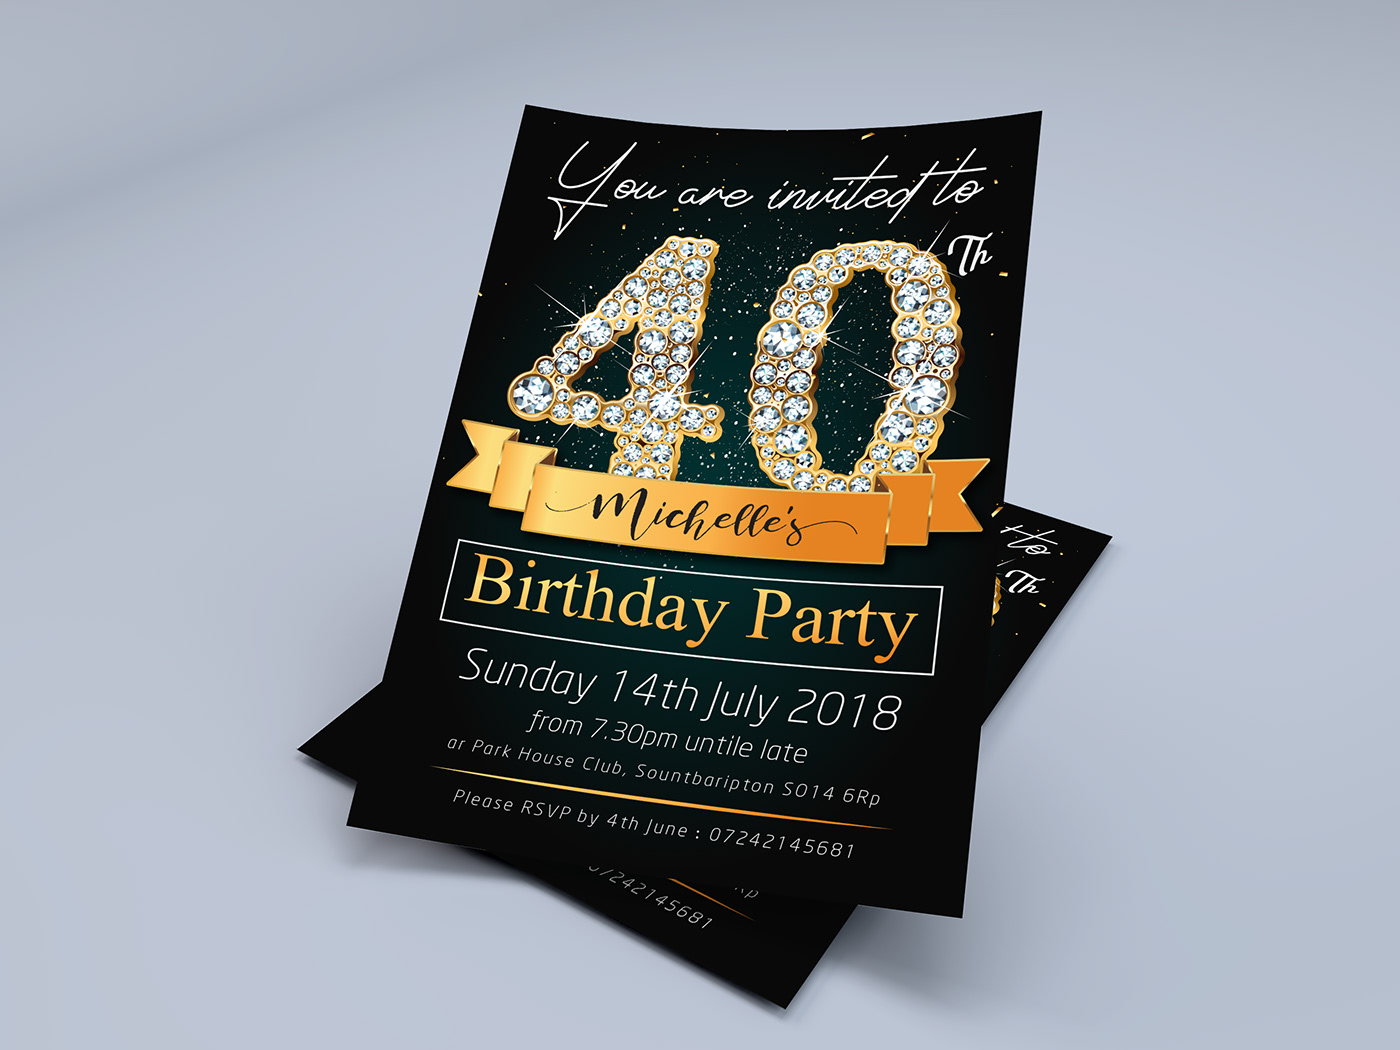 Save-The-Date, Birthday Invitation Template on Behance